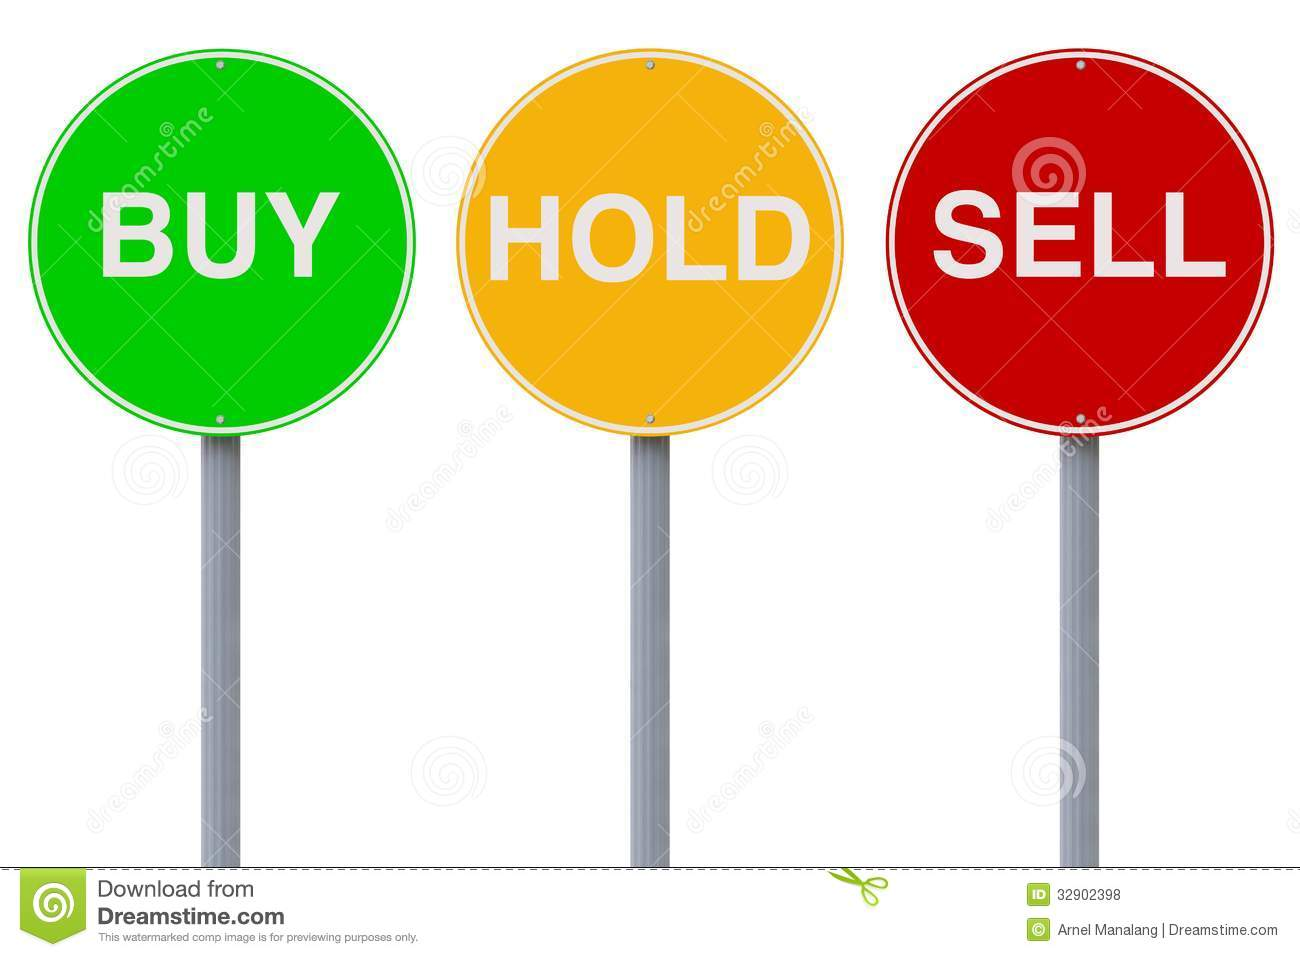 Buying options on stock market